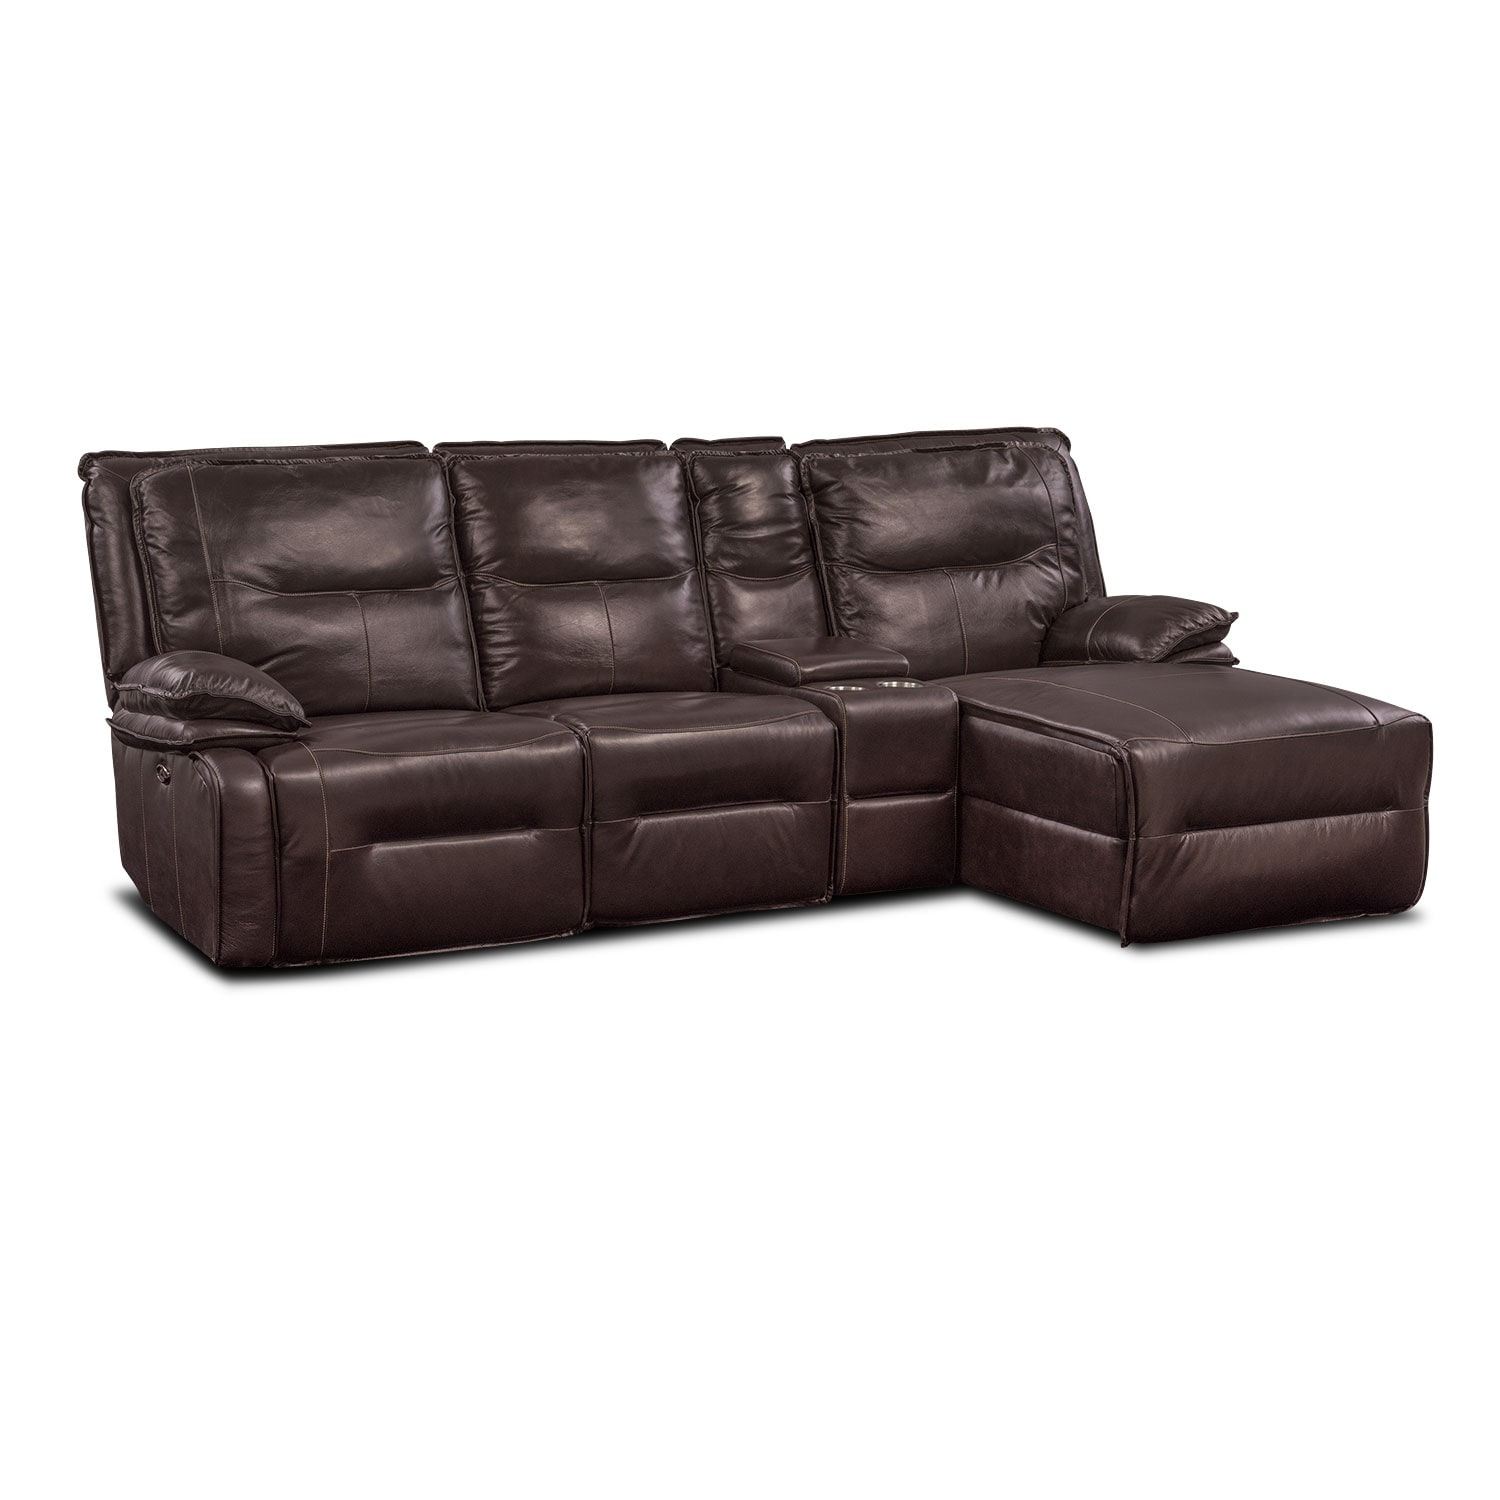 Living Room Furniture - Nikki 4-Piece Power Reclining Sectional with Right-Facing Chaise - Brown